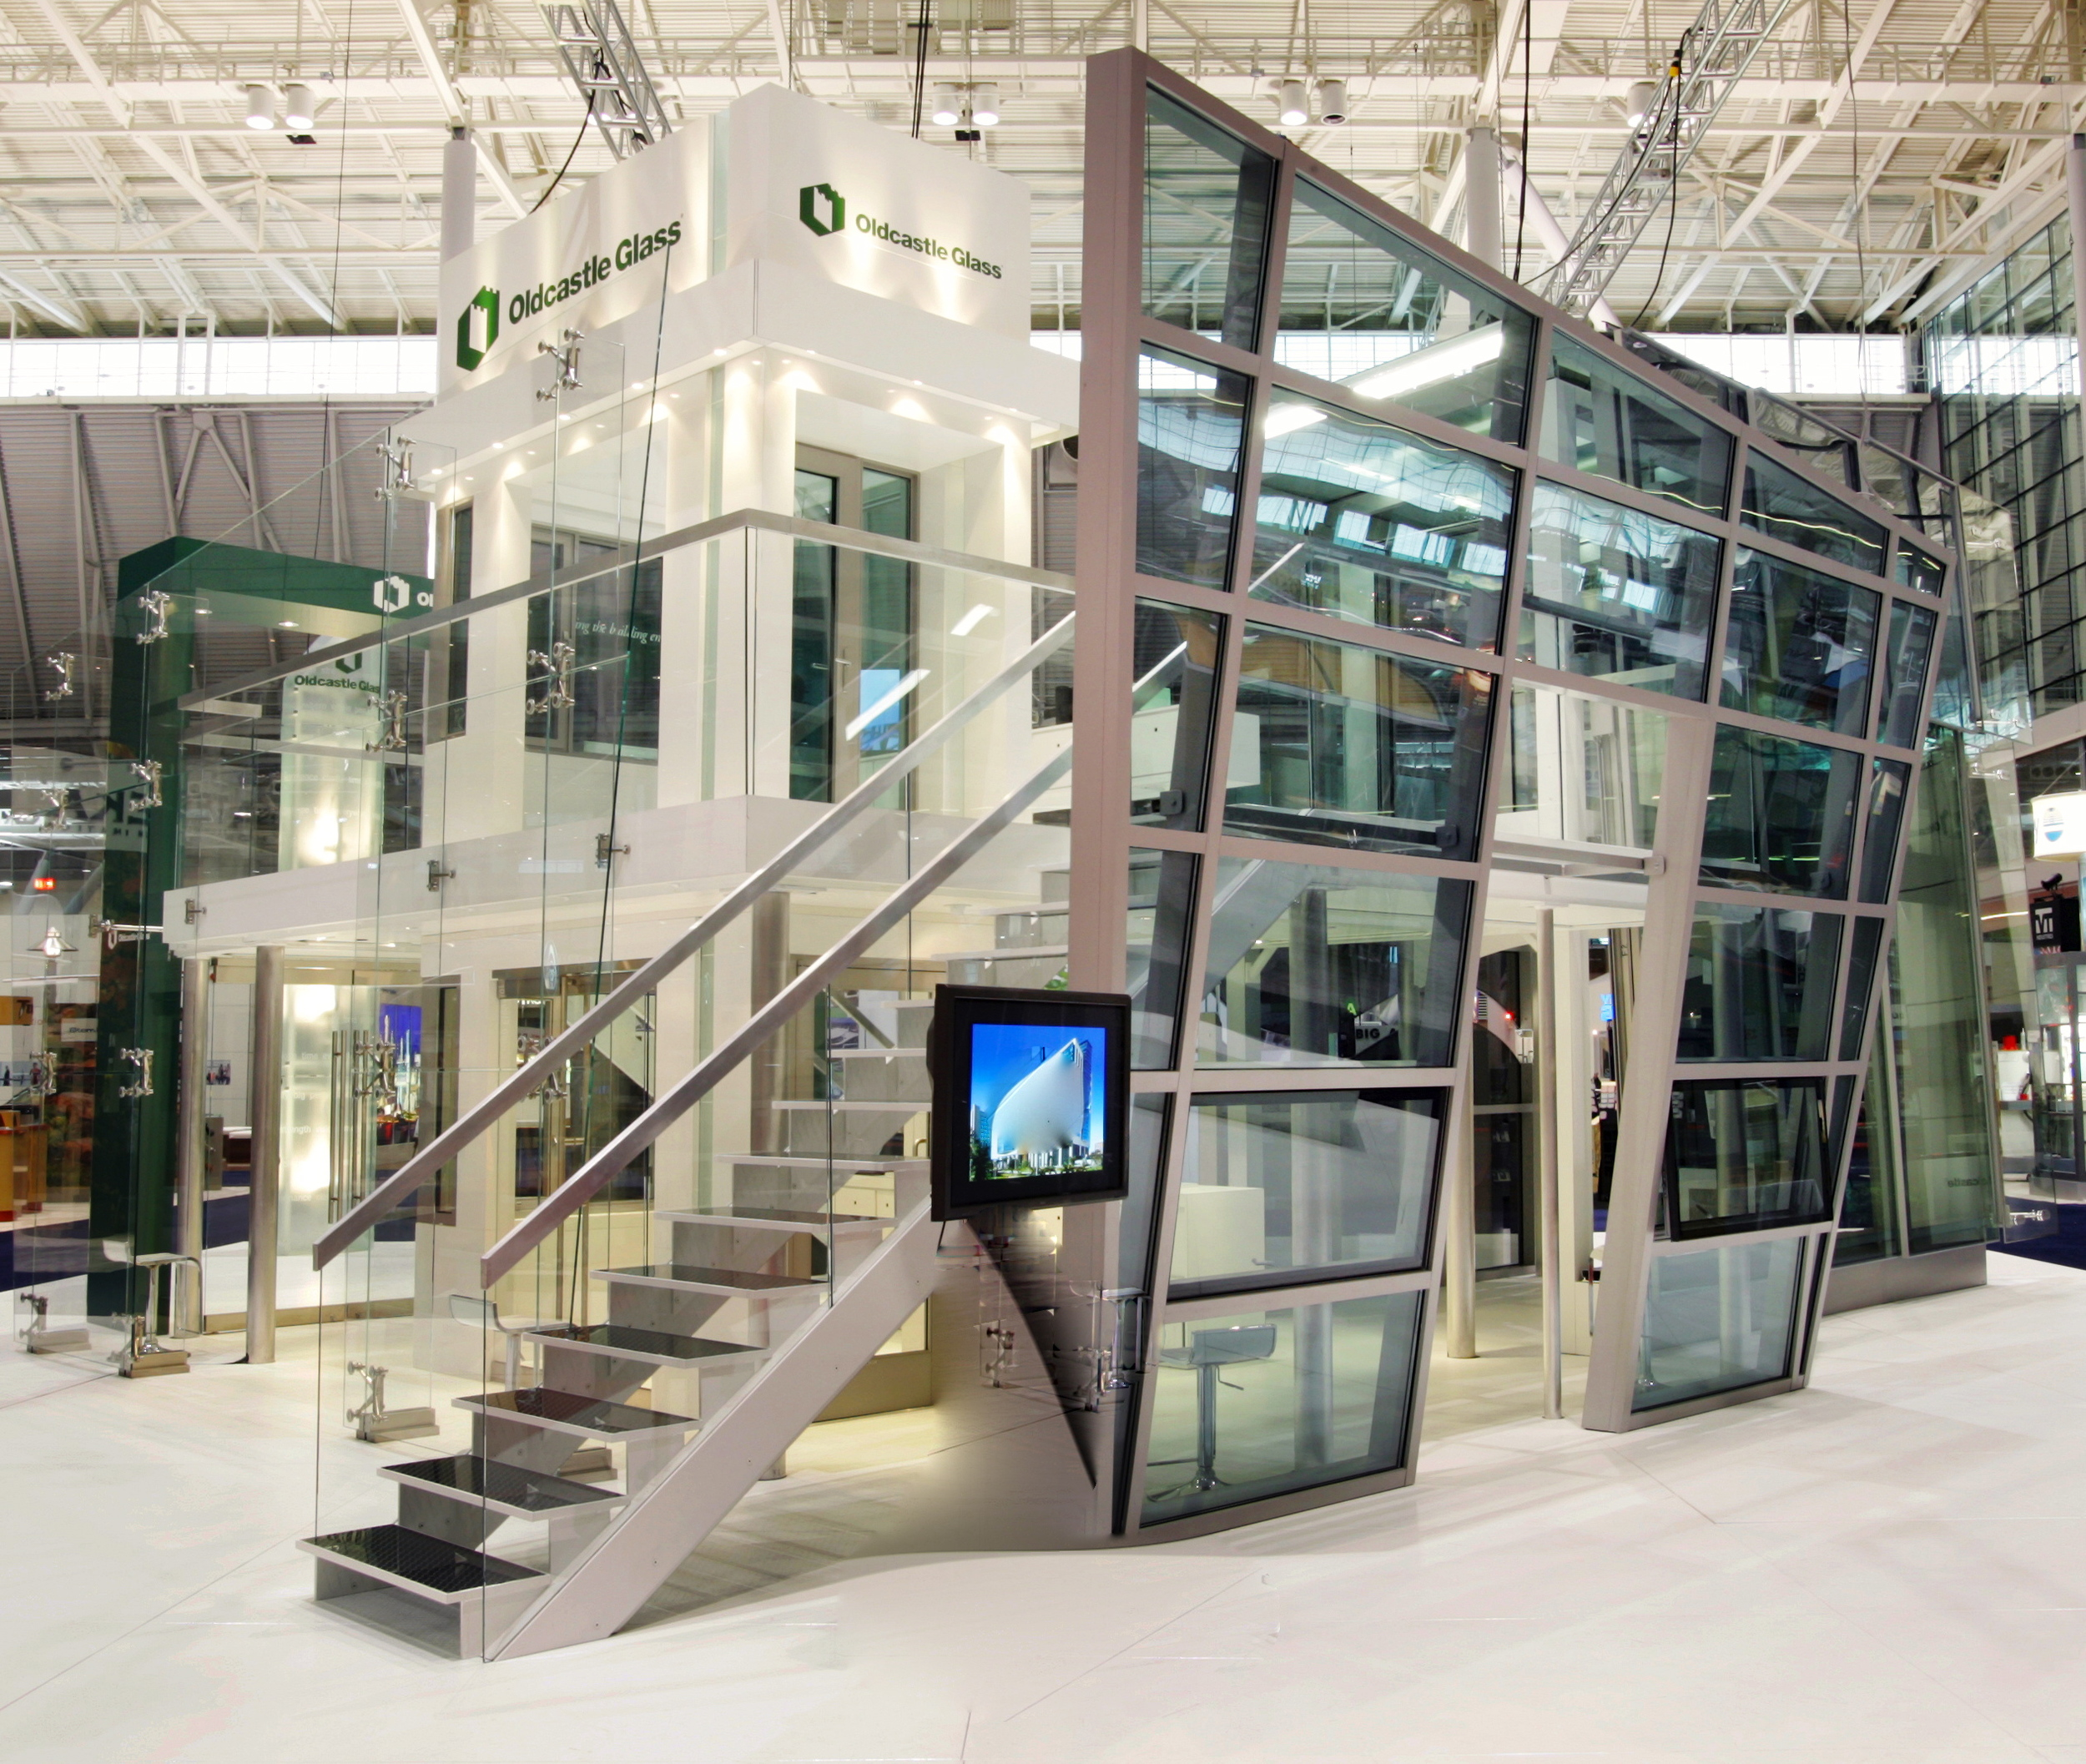 An earthquake-resistant, double-deck, glass and aluminum trade show exhibit. Structural elements, glass tower framing assembly, product displays, and graphics by Ndio. Design by Design Collaborative.